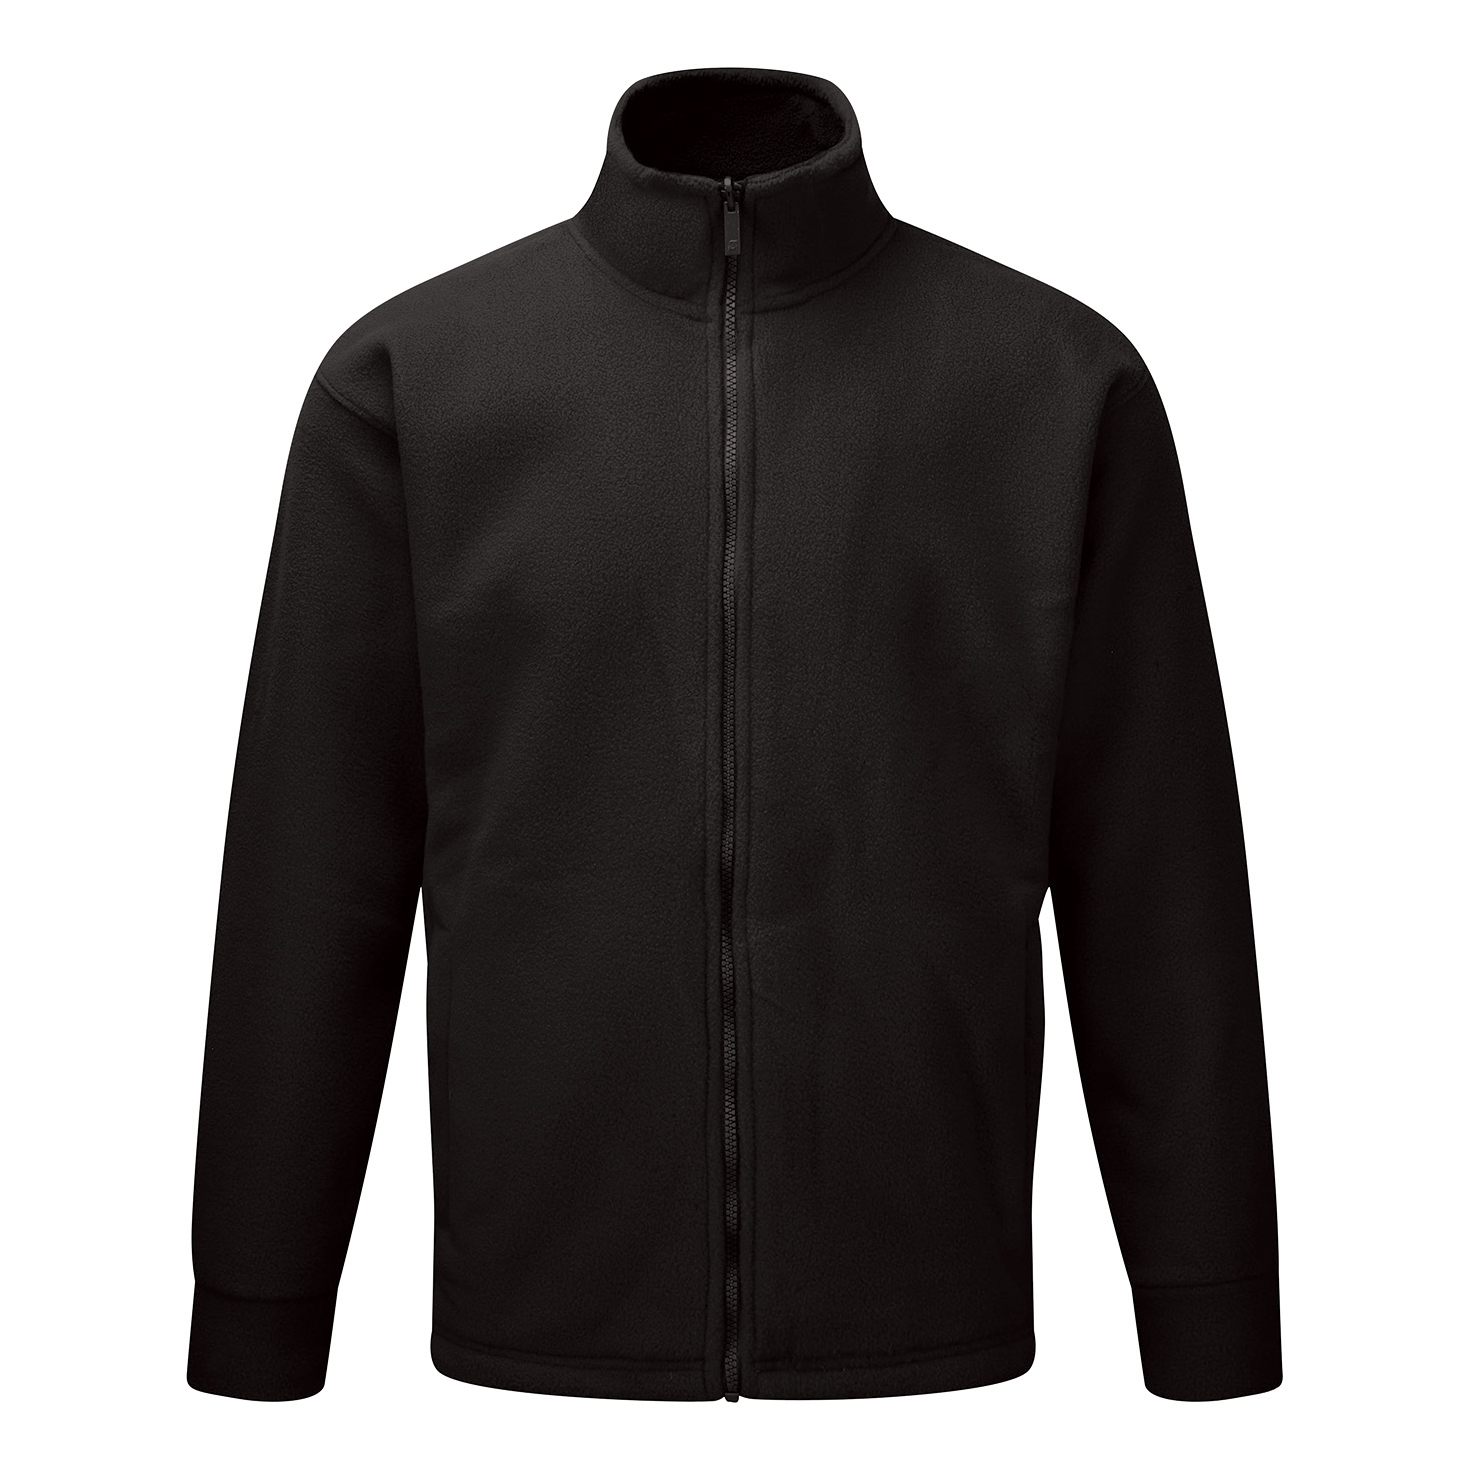 Classic Fleece Jacket Elasticated Cuffs Full Zip Front Medium Black Ref FLJBLL *1-3 Days Lead Time*